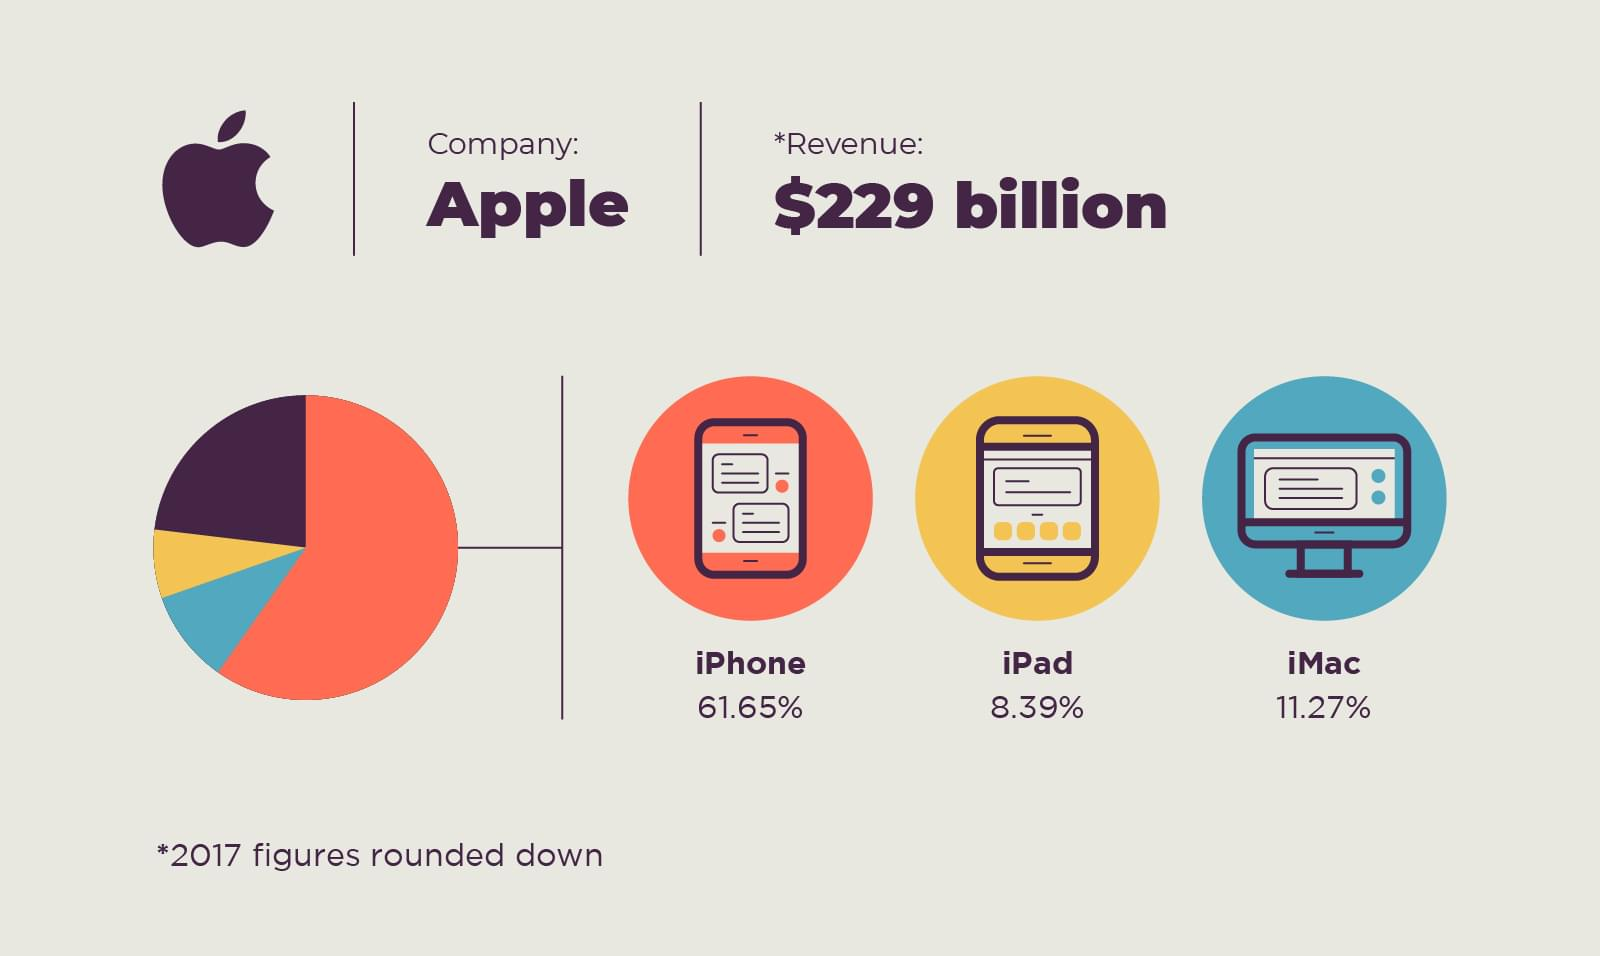 Apple iPhone carries the large majority of revenue